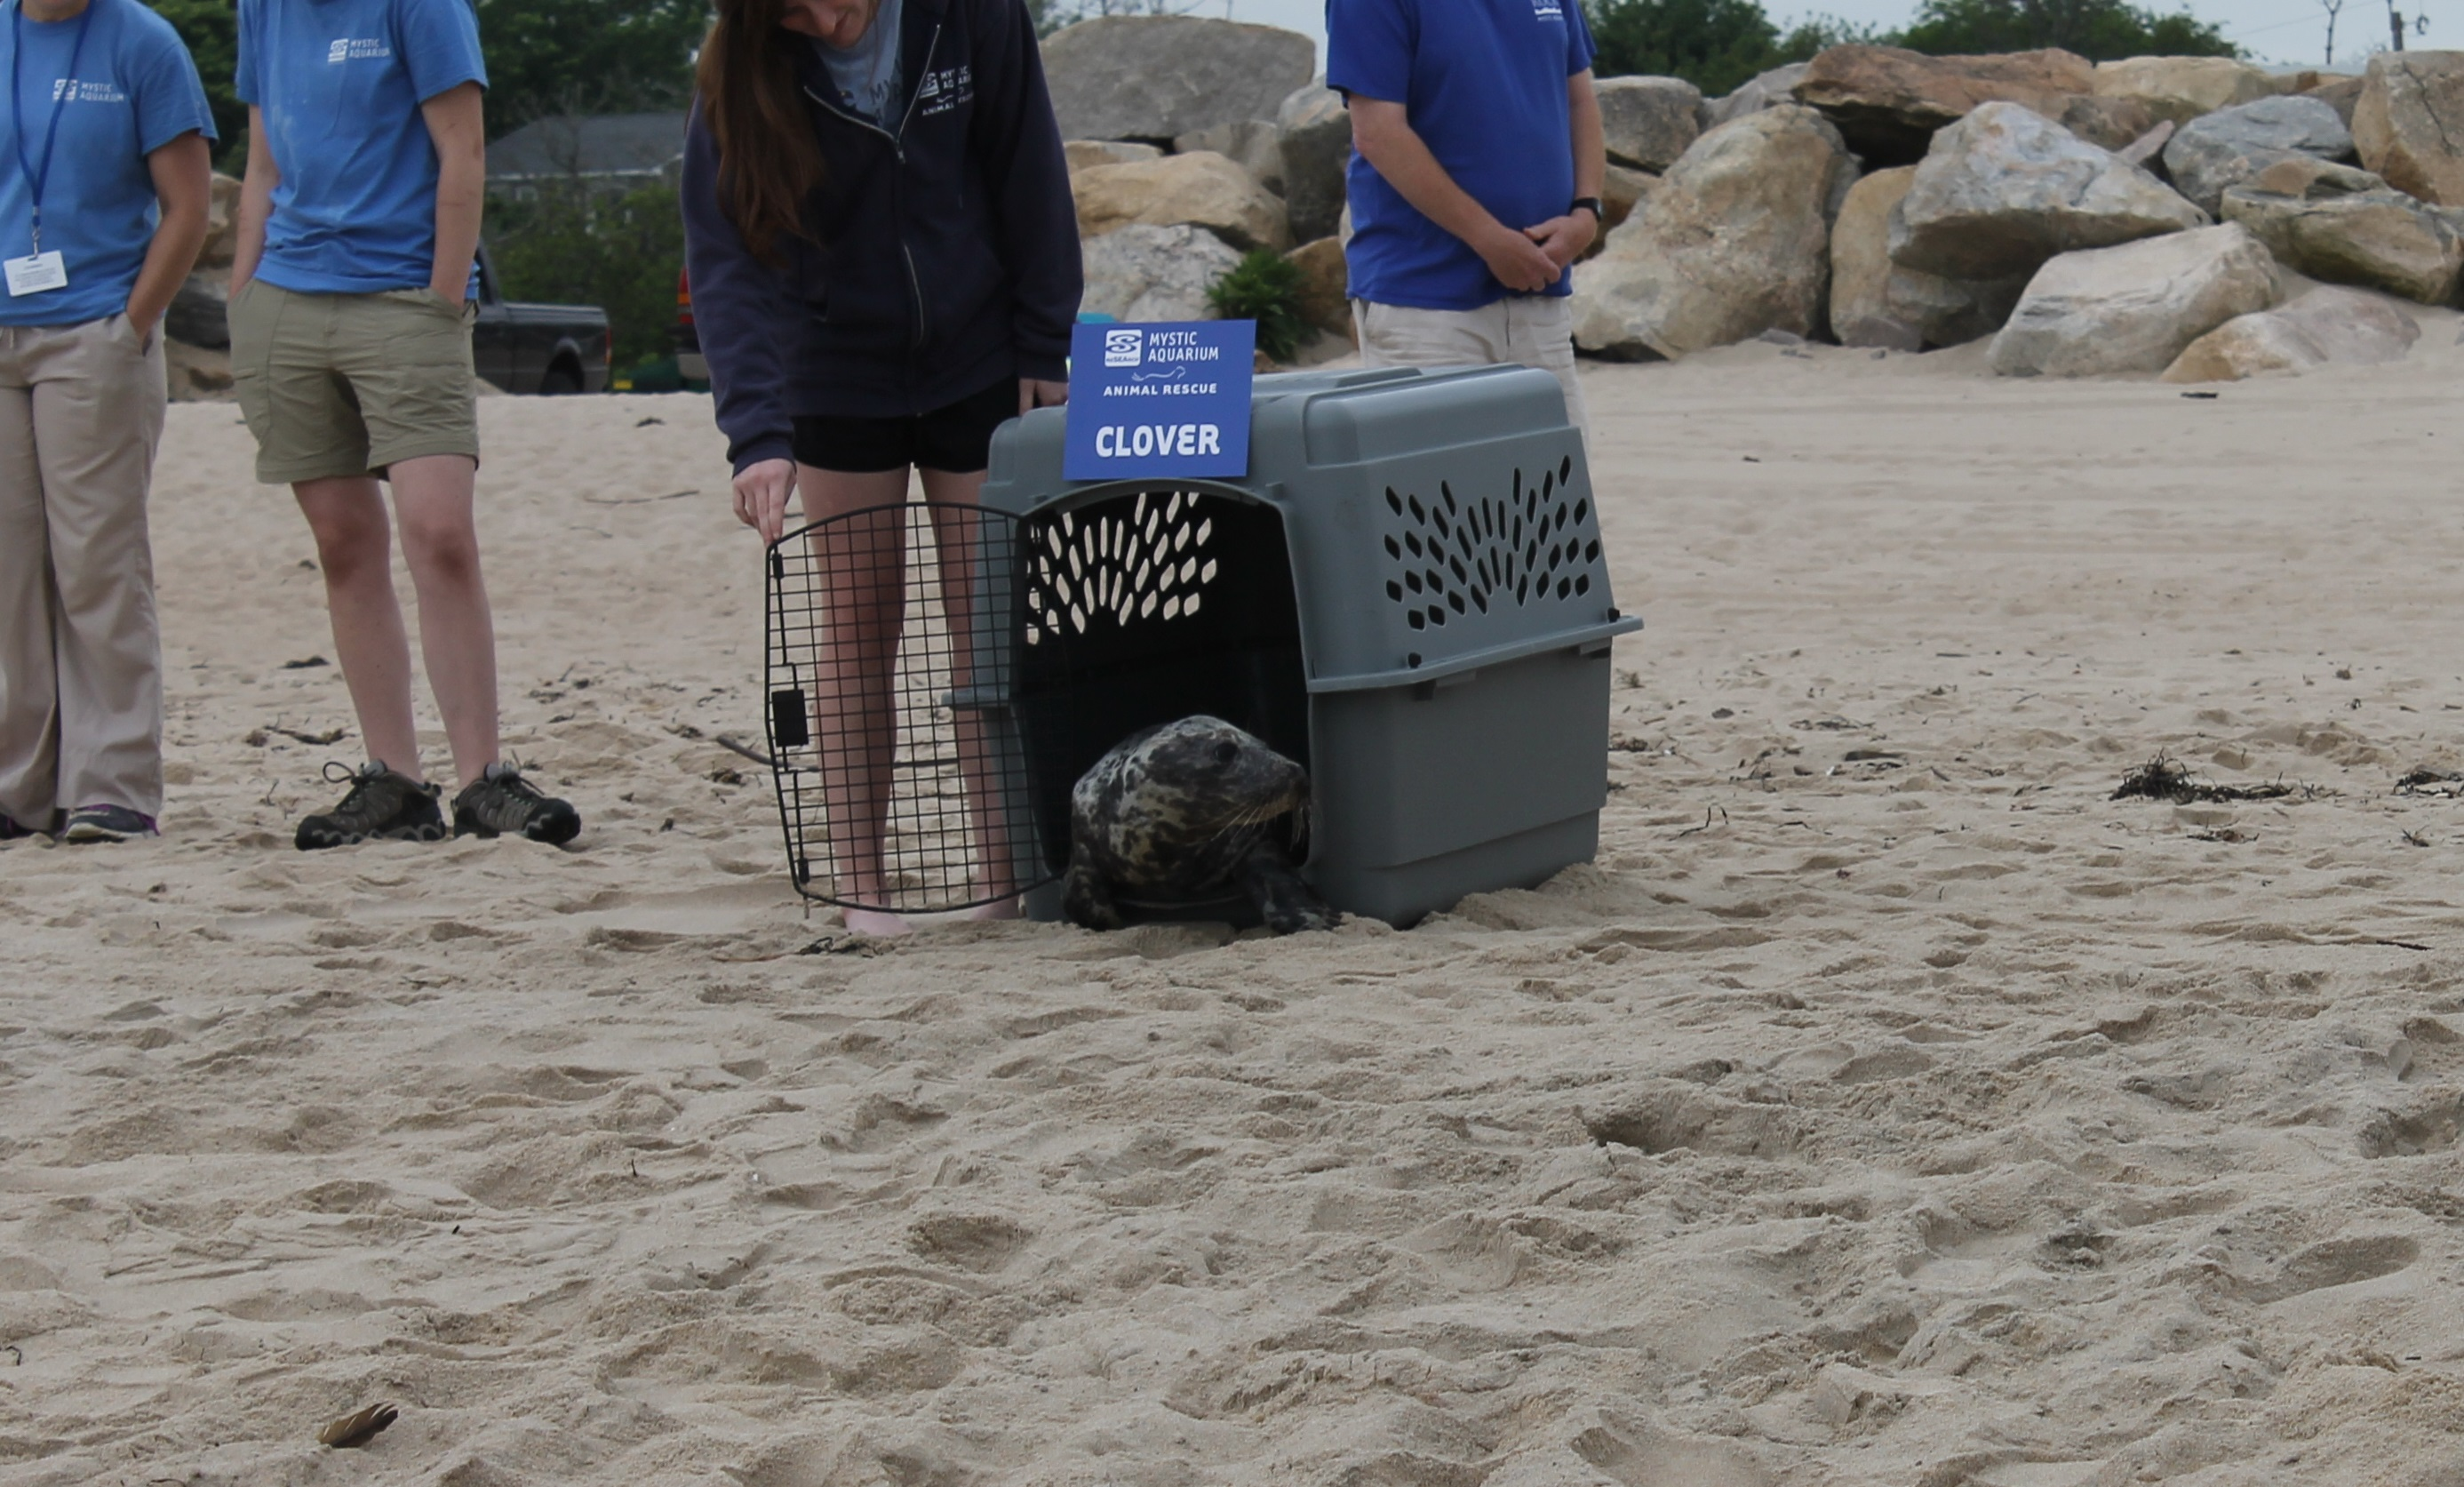 REHABBED GRAY SEAL RELEASED BY MYSTIC AQUARIUM'S ANIMAL RESCUE PROGRAM